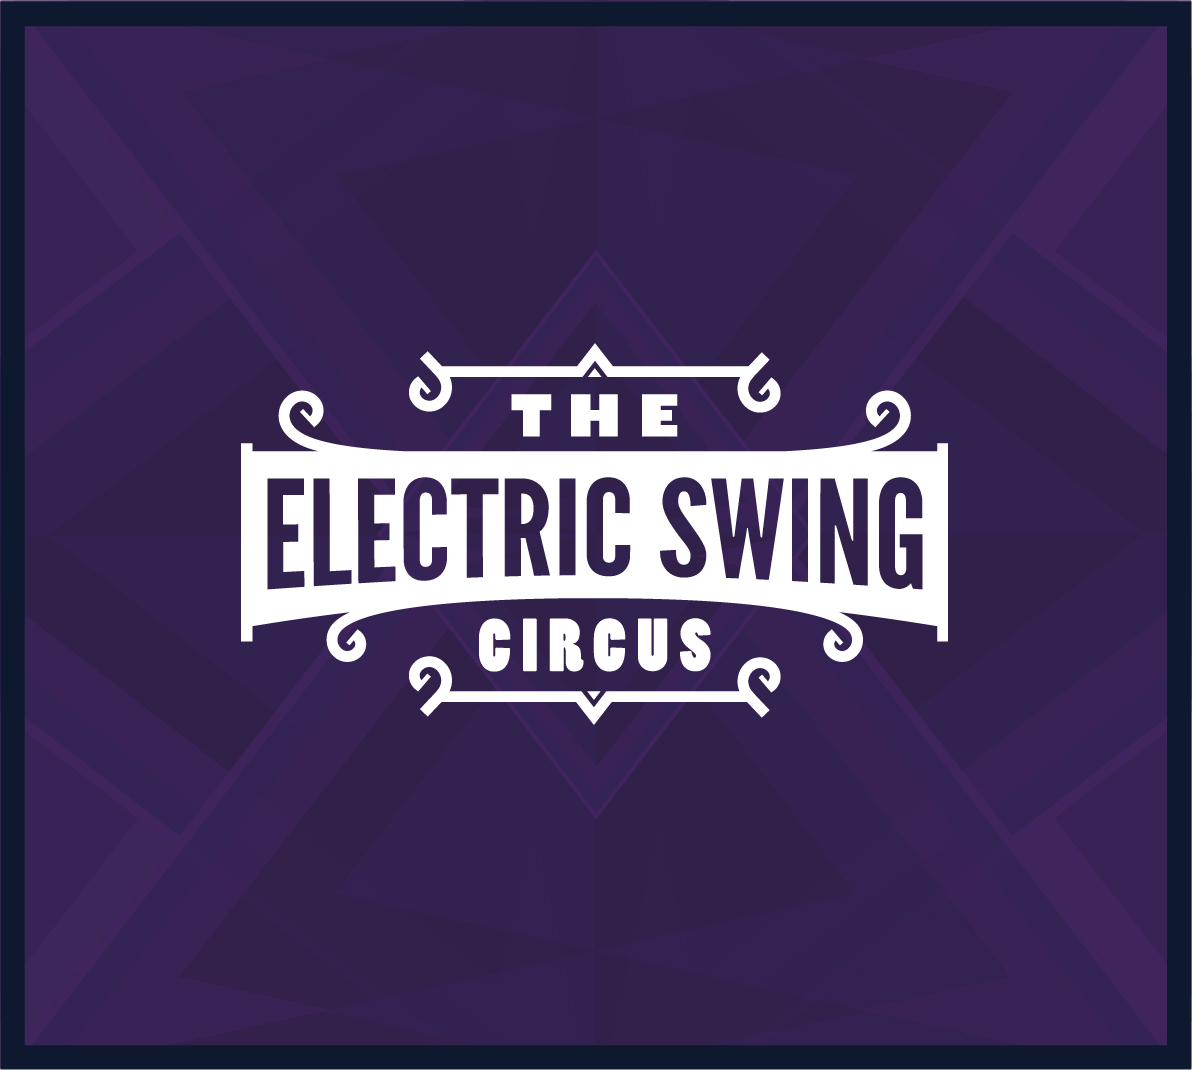 The Electric Swing Circus - CD Album - Electric Swing Circus